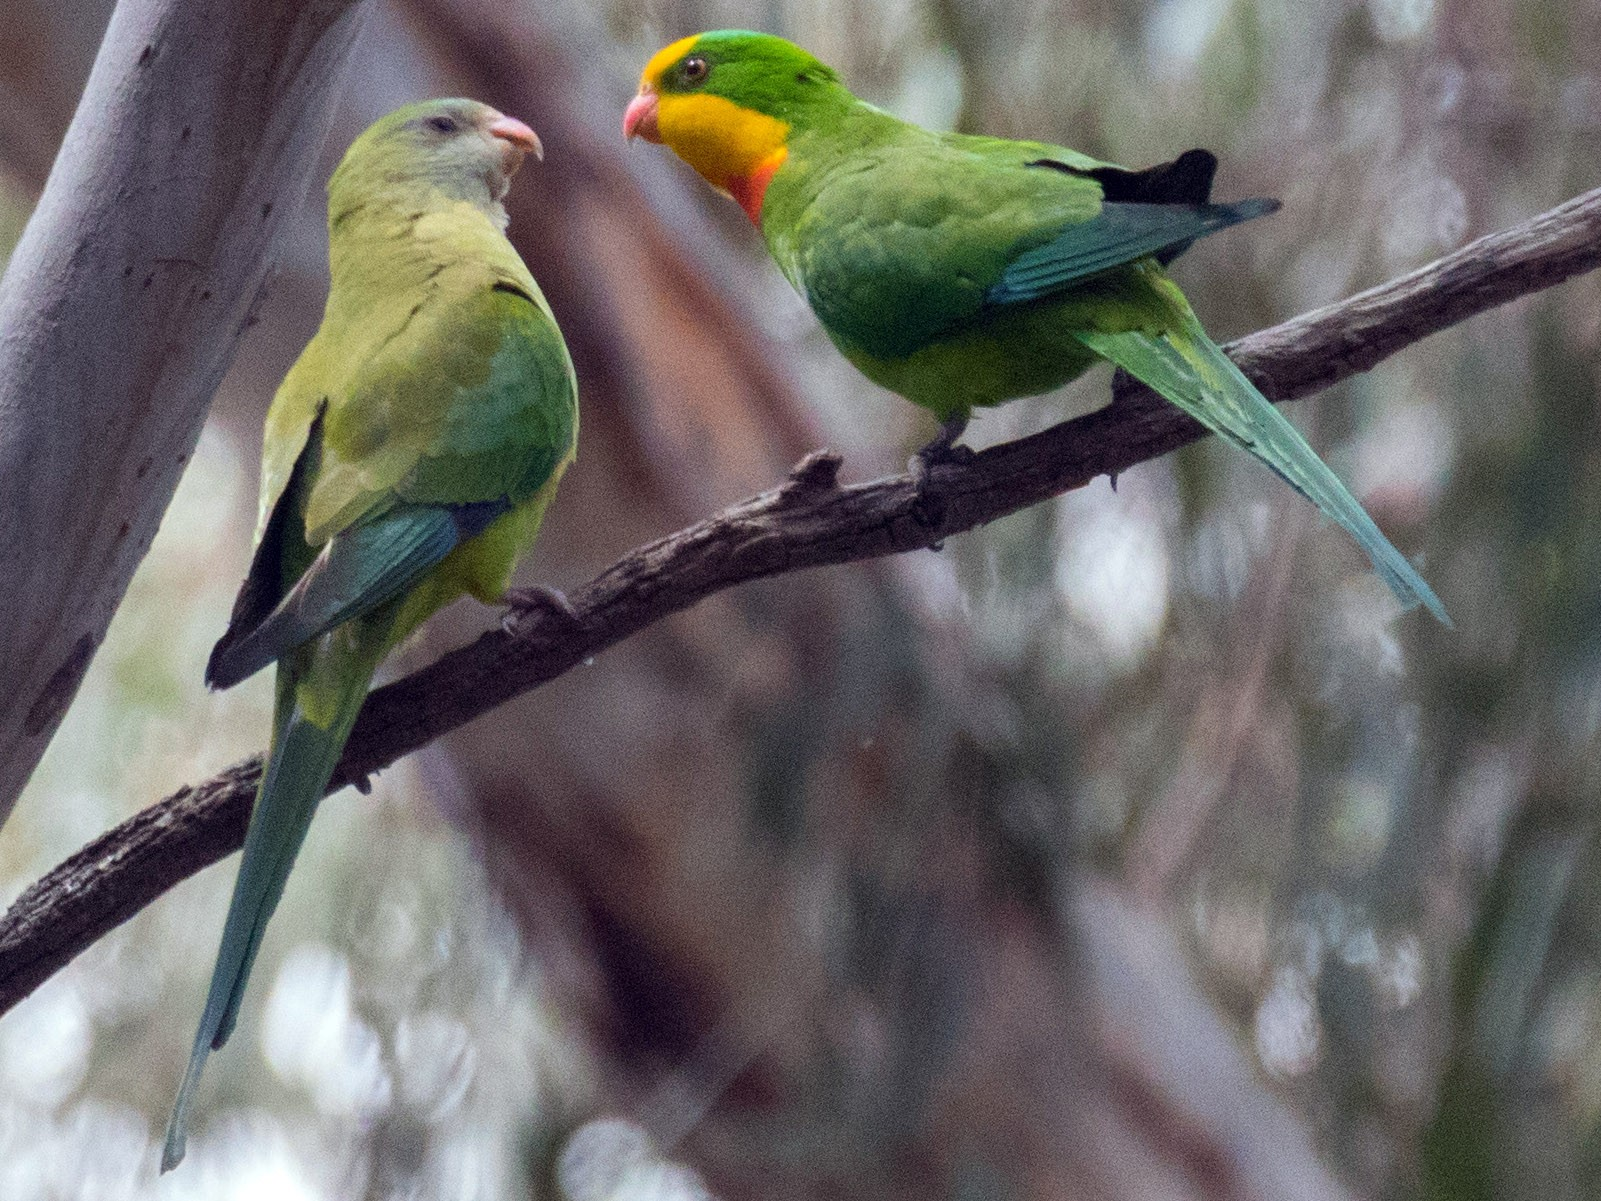 Superb Parrot - Dixie Sommers